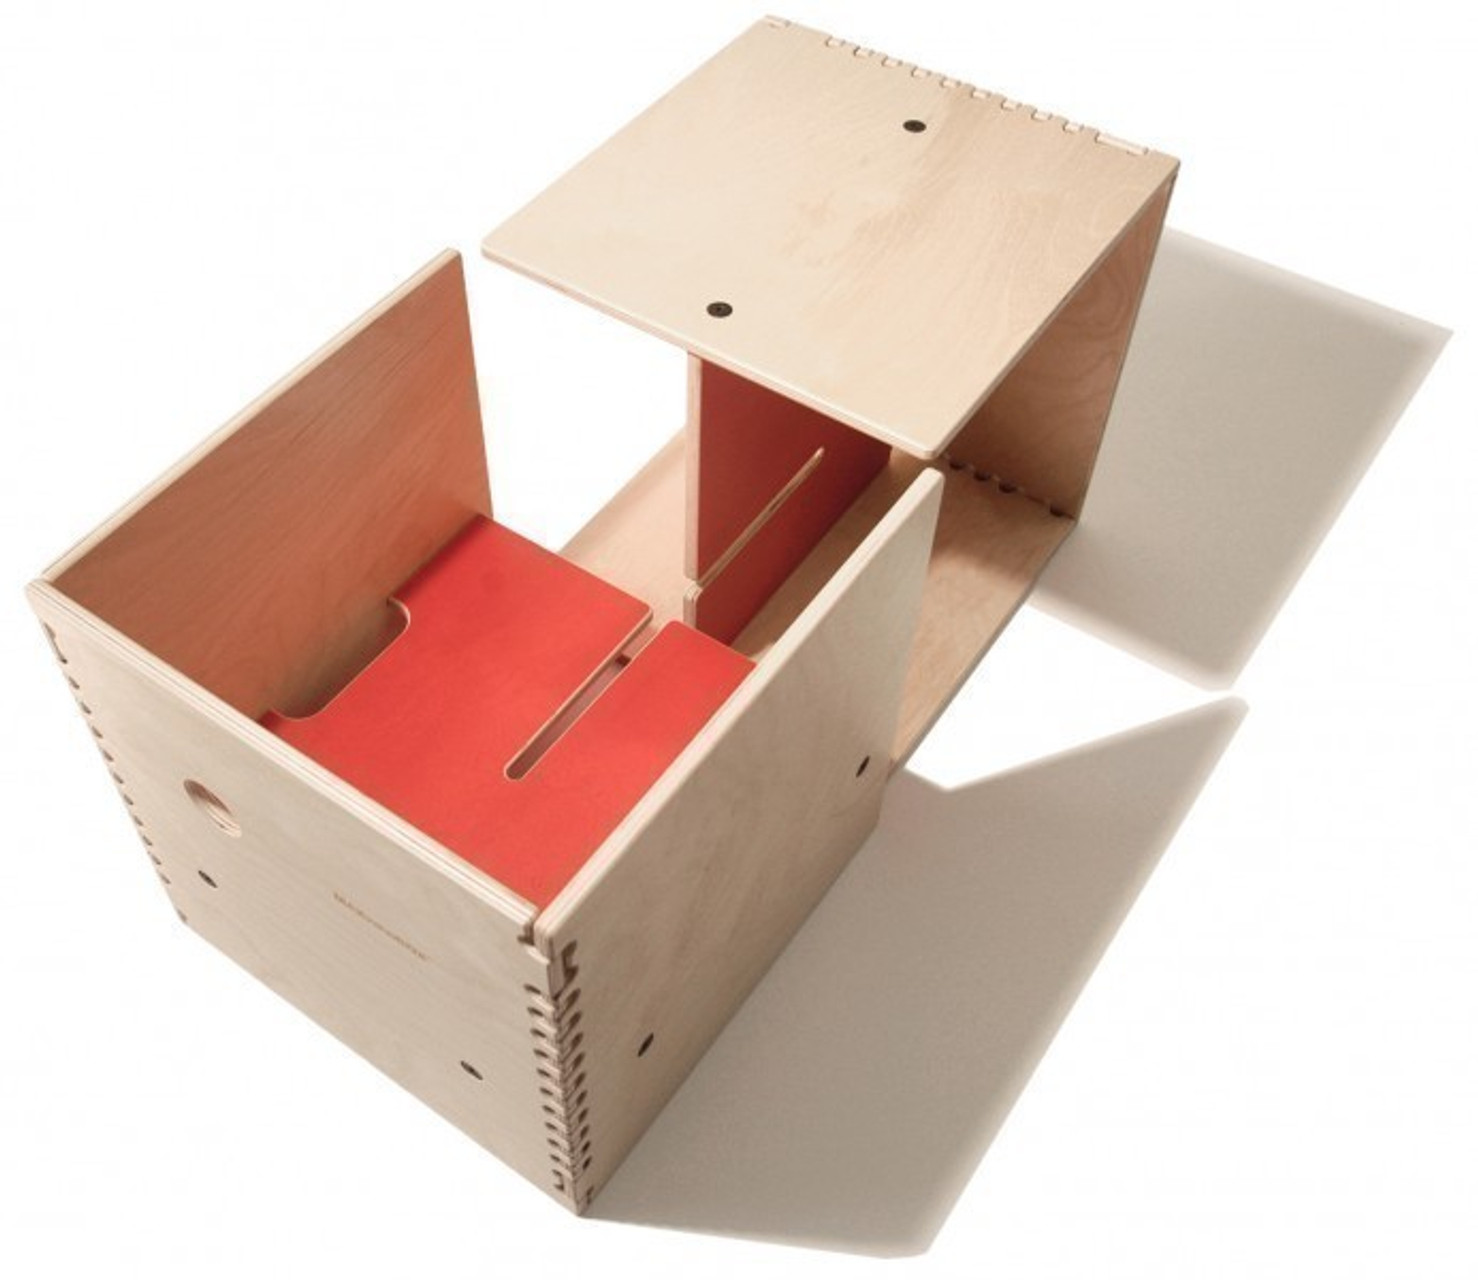 Maxinthebox kinderm bel set von perludi design als tisch for Design kindermobel